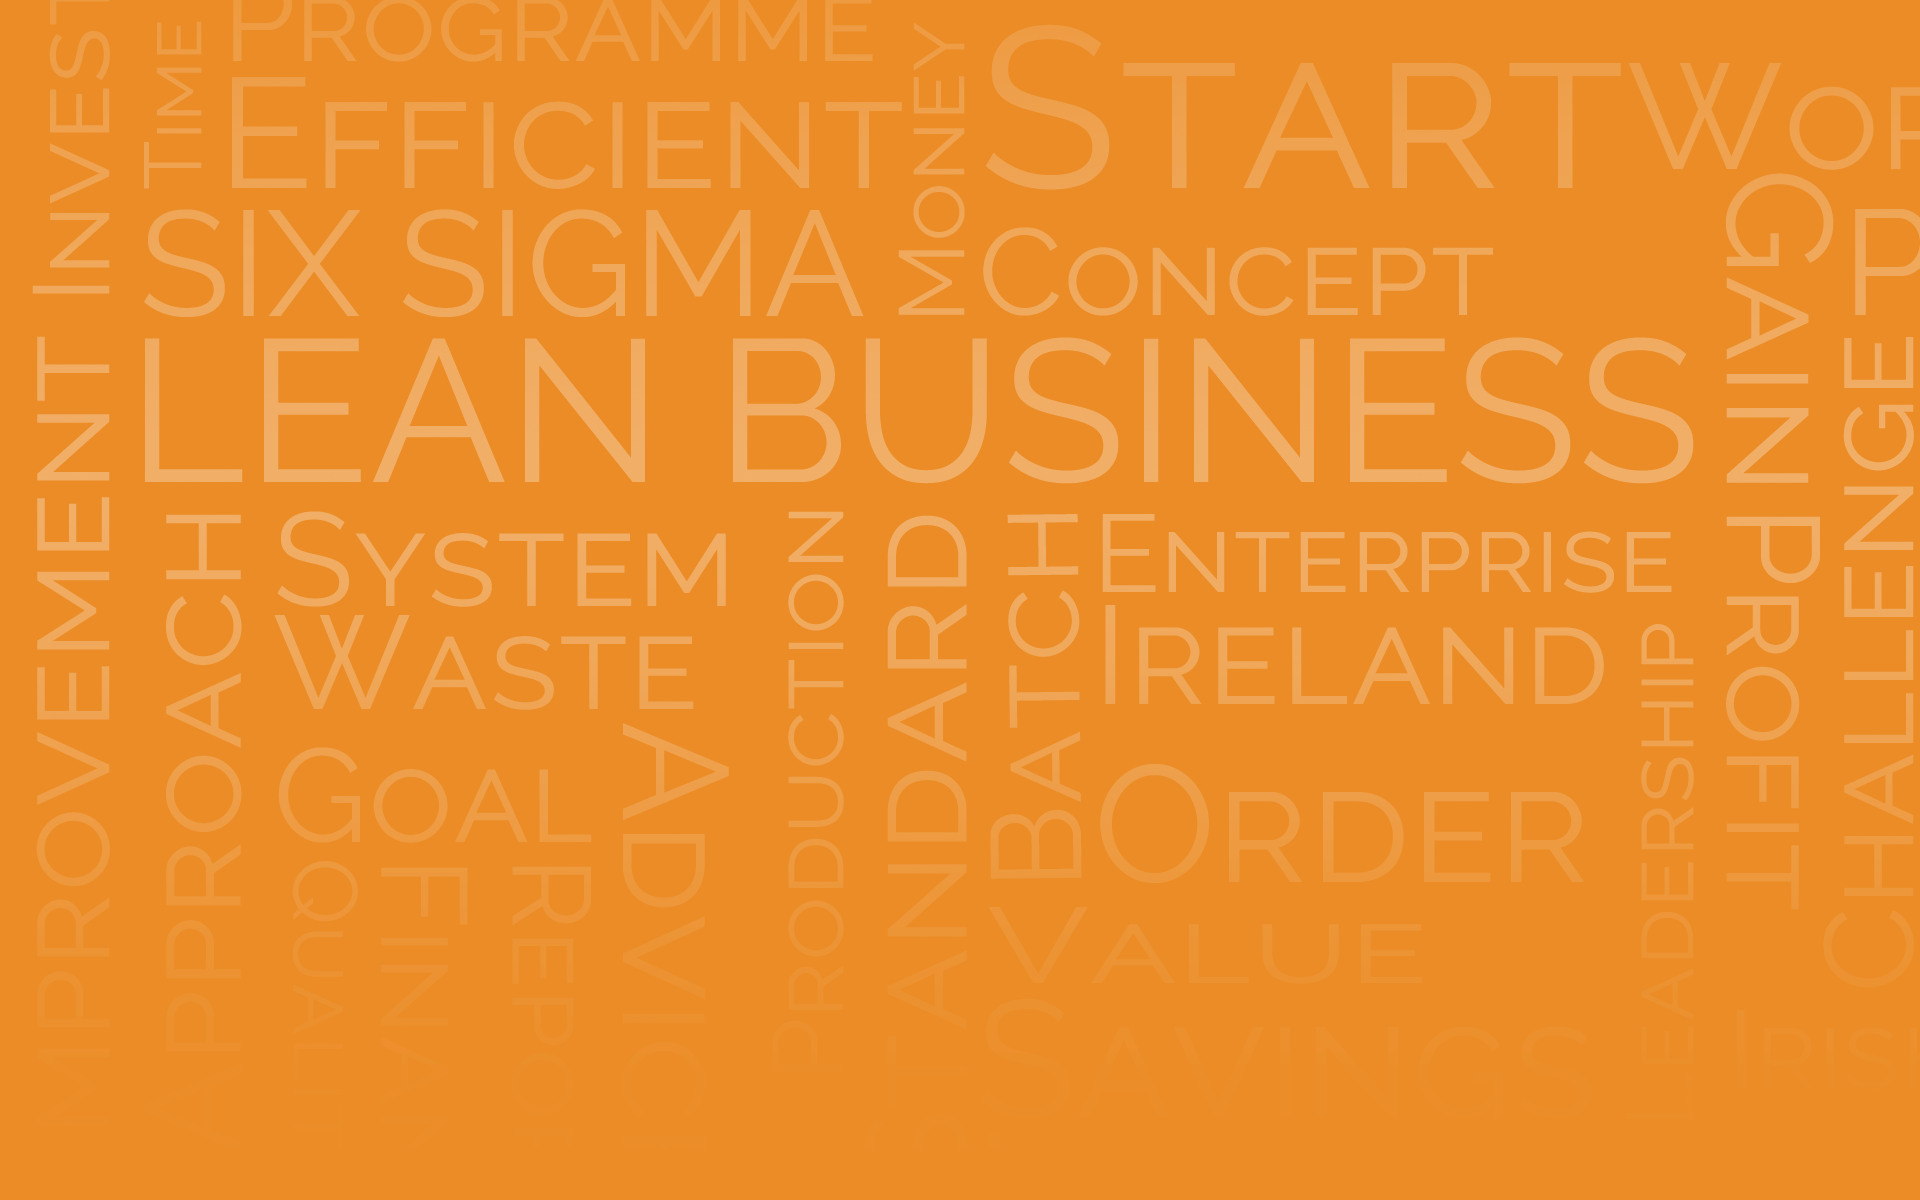 Achieve efficiencies in your business using Lean